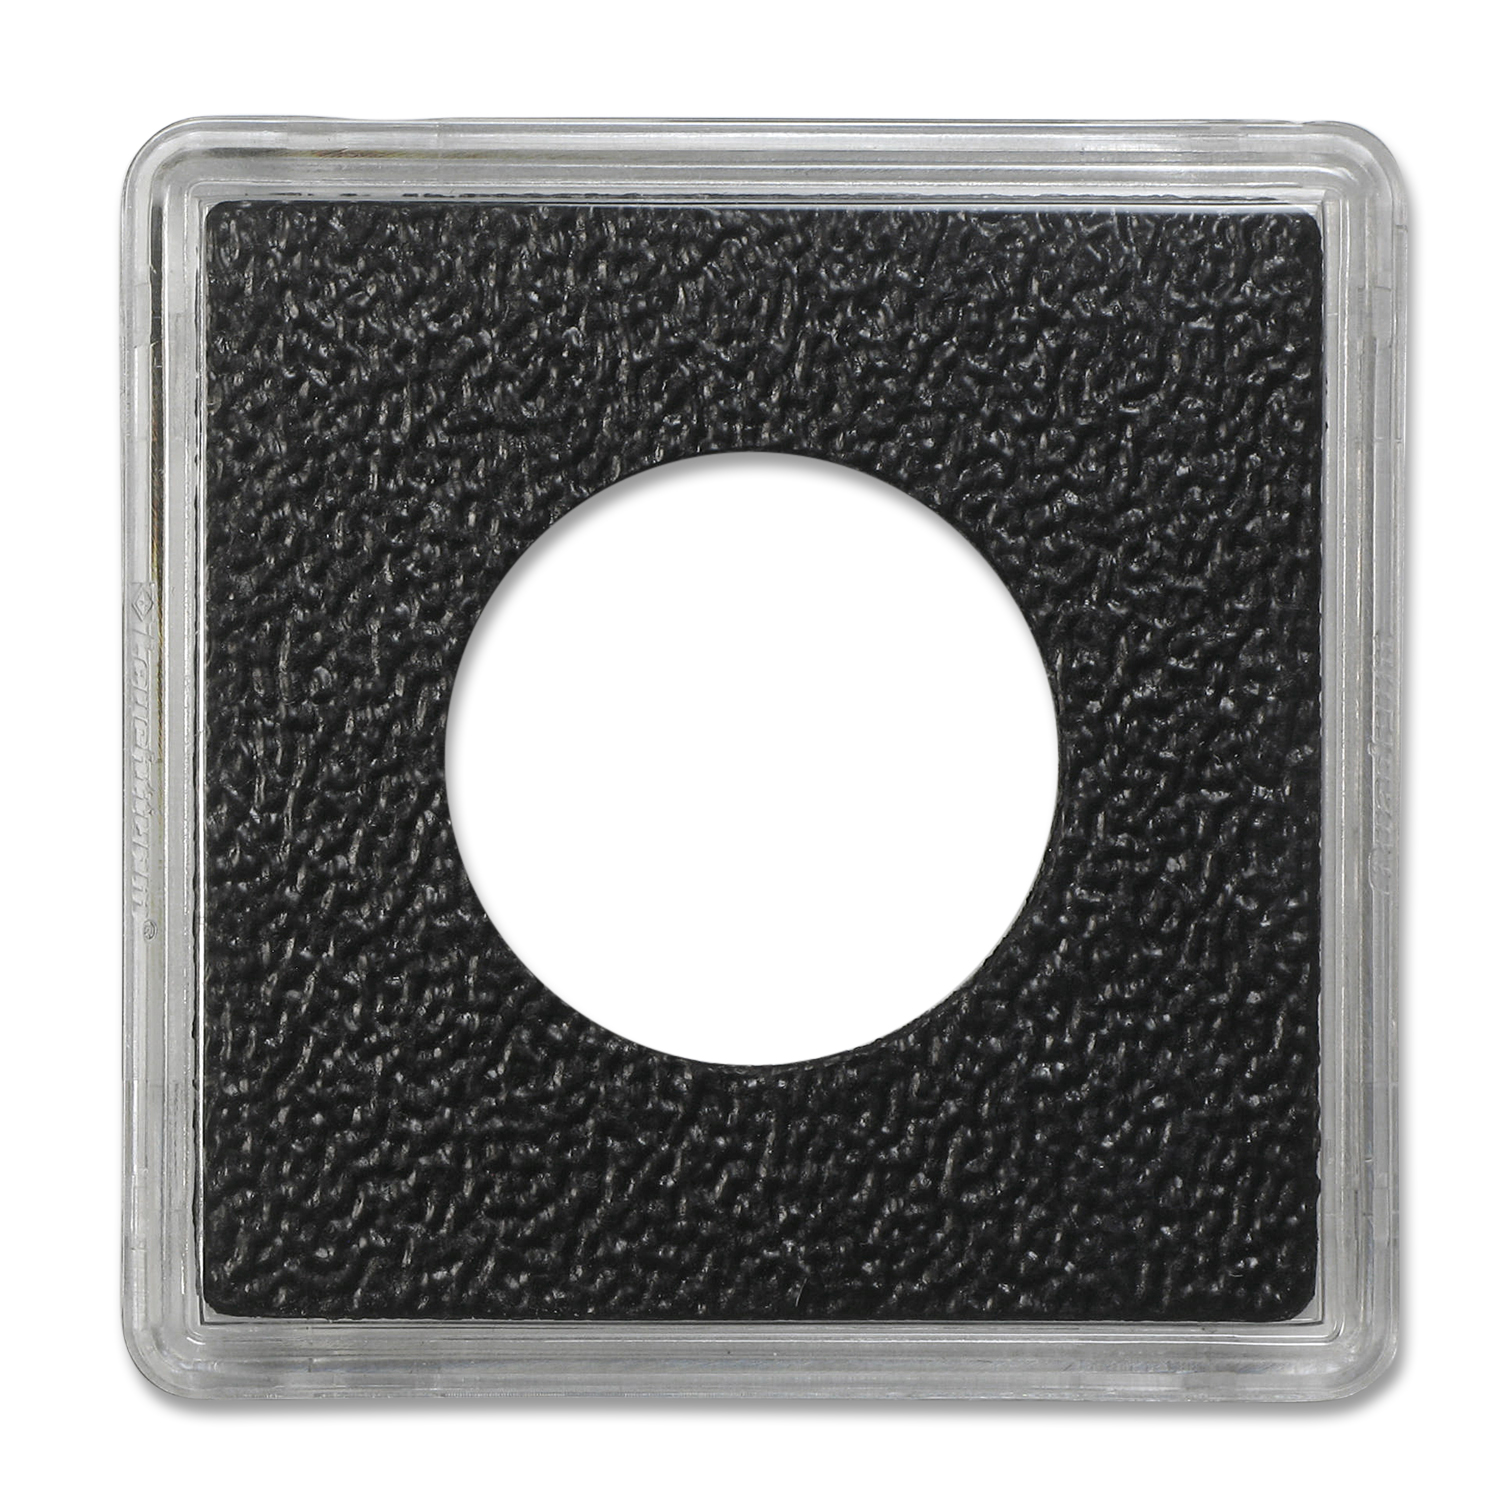 Quadrum Intercept Snaplock Holder w/Black Gasket - 24 mm